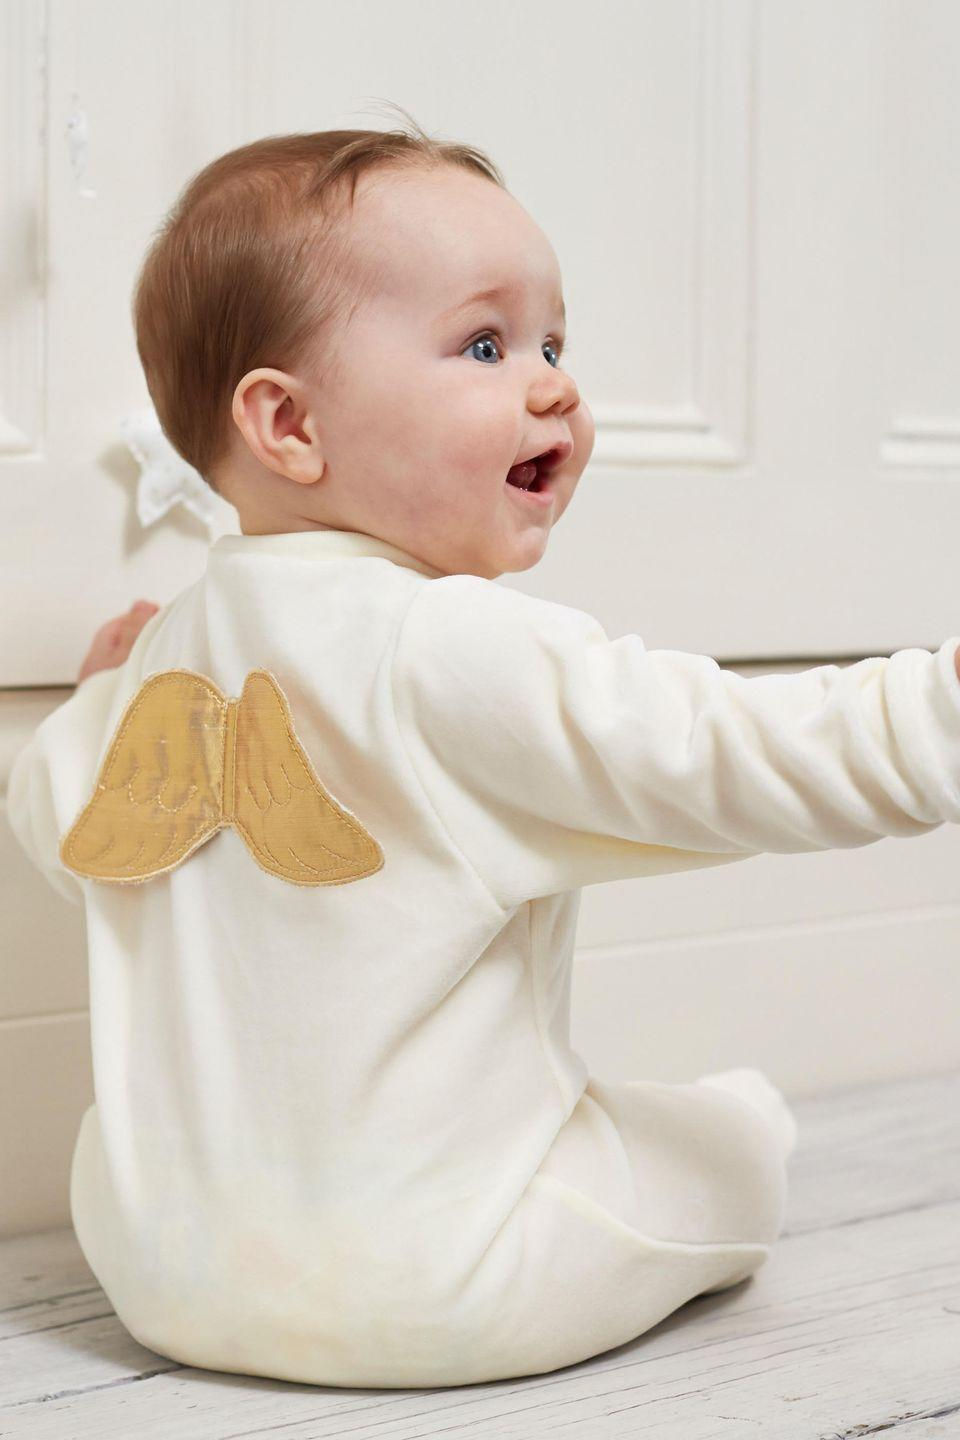 """<p>It's not really surprising that the royals have turned to this luxury children's label to dress their children – the brand's creator is royal herself. Princess Marie-Chantal is married to the Crown Prince of Greece and designs luxury childrenswear with playful details: think angel wings, embroidered crowns and cashmere accessories. Princess Charlotte has worn several MC creations, <a href=""""https://www.harpersbazaar.com/uk/culture/news/a41228/birthday-picture-princess-charlotte-turns-two/"""" rel=""""nofollow noopener"""" target=""""_blank"""" data-ylk=""""slk:including one of their scarves in her second birthday portrait"""" class=""""link rapid-noclick-resp"""">including one of their scarves in her second birthday portrait</a>.</p><p><a class=""""link rapid-noclick-resp"""" href=""""https://mariechantal.com/"""" rel=""""nofollow noopener"""" target=""""_blank"""" data-ylk=""""slk:SHOP NOW"""">SHOP NOW</a></p>"""